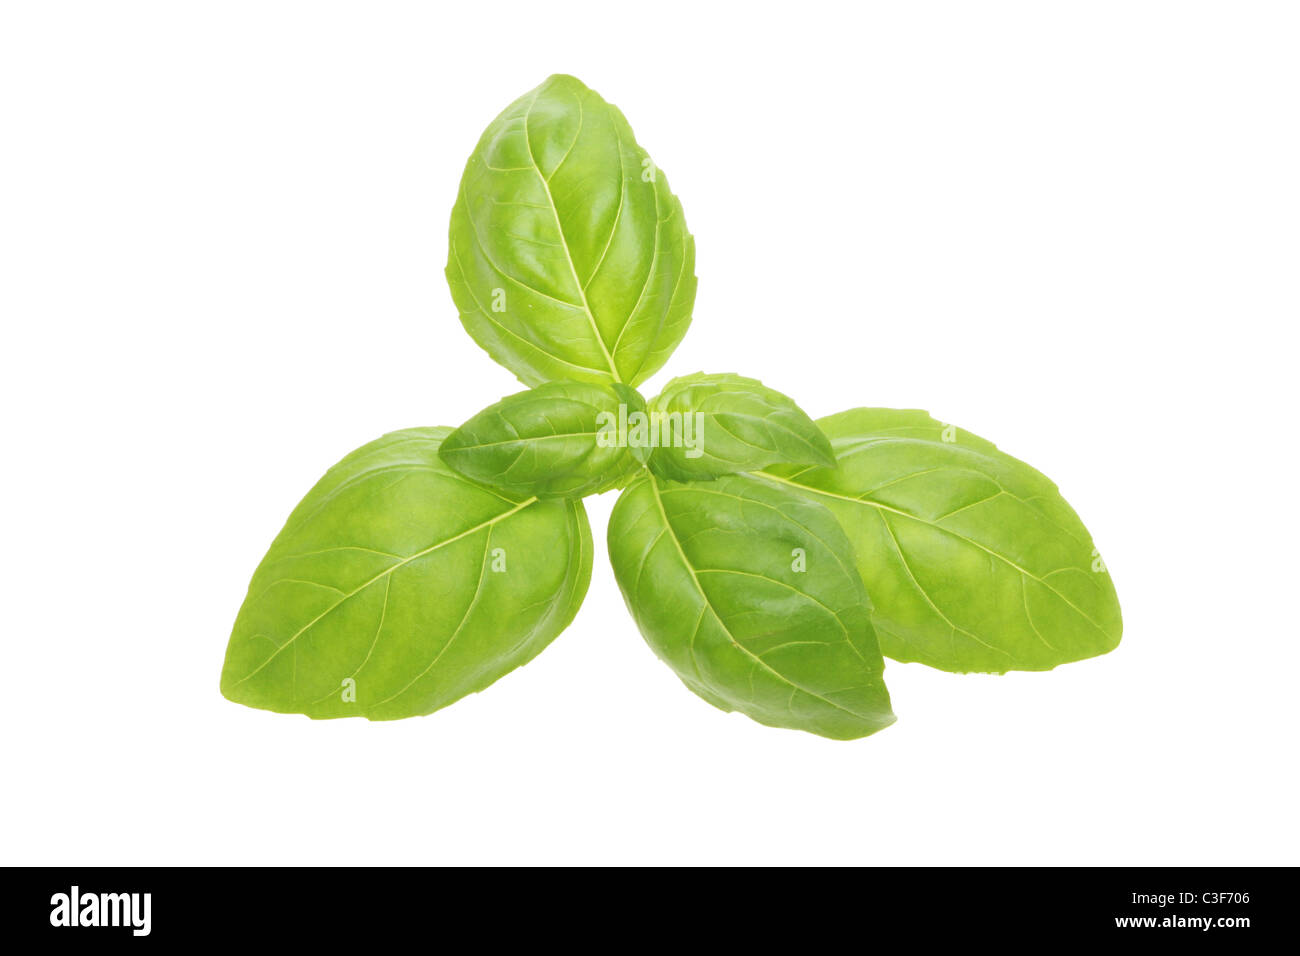 Sprig of fresh basil herb leaves isolated against white - Stock Image